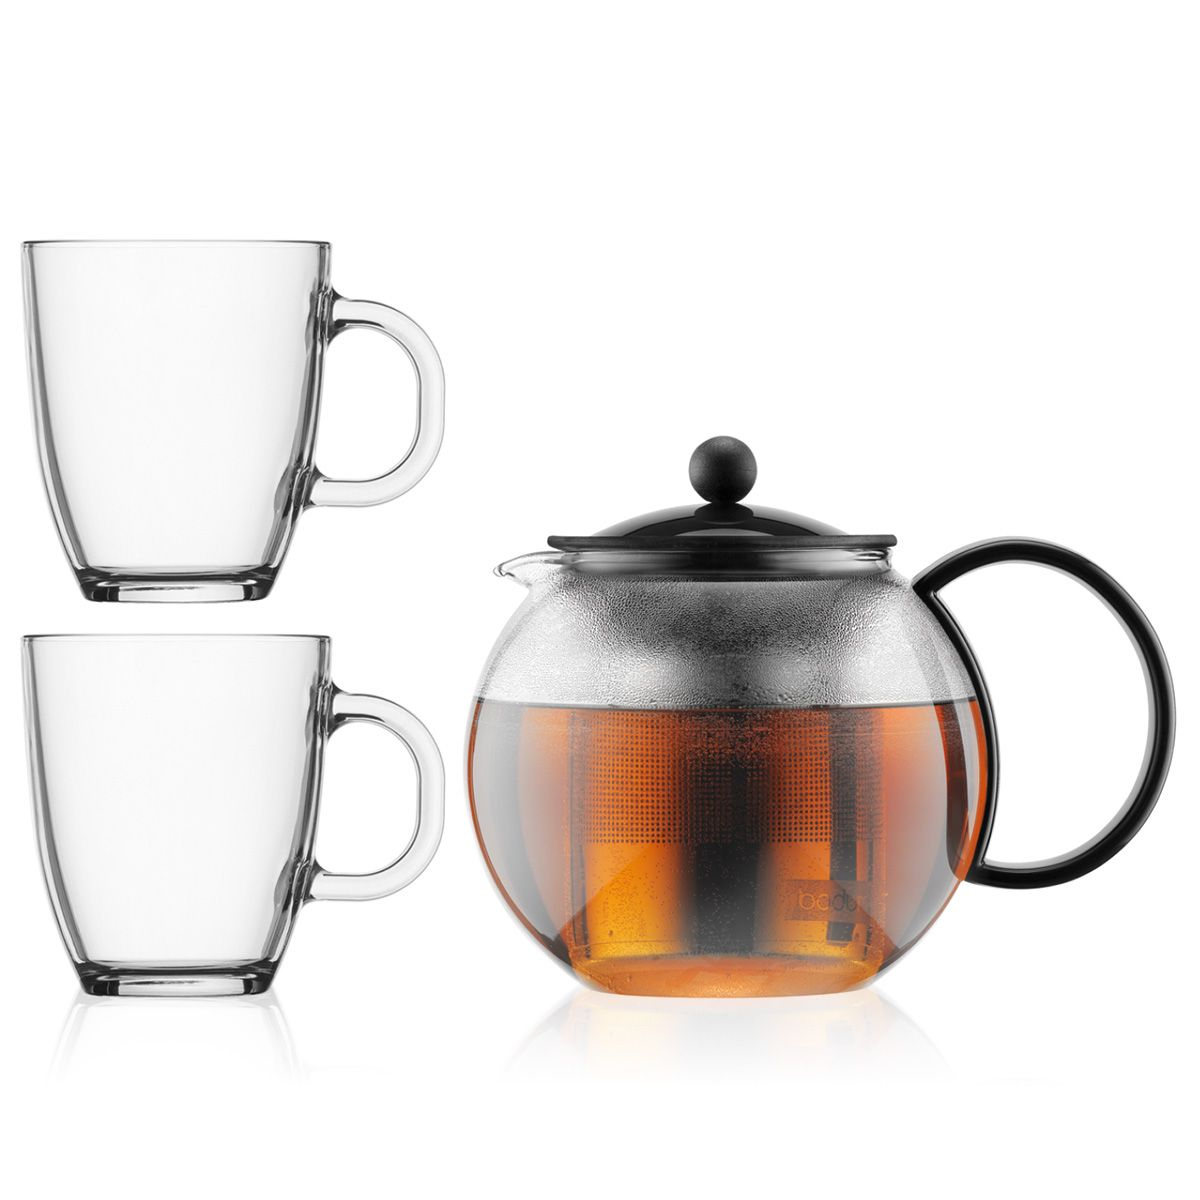 teapot with infuser and 2 mugs - Bodum